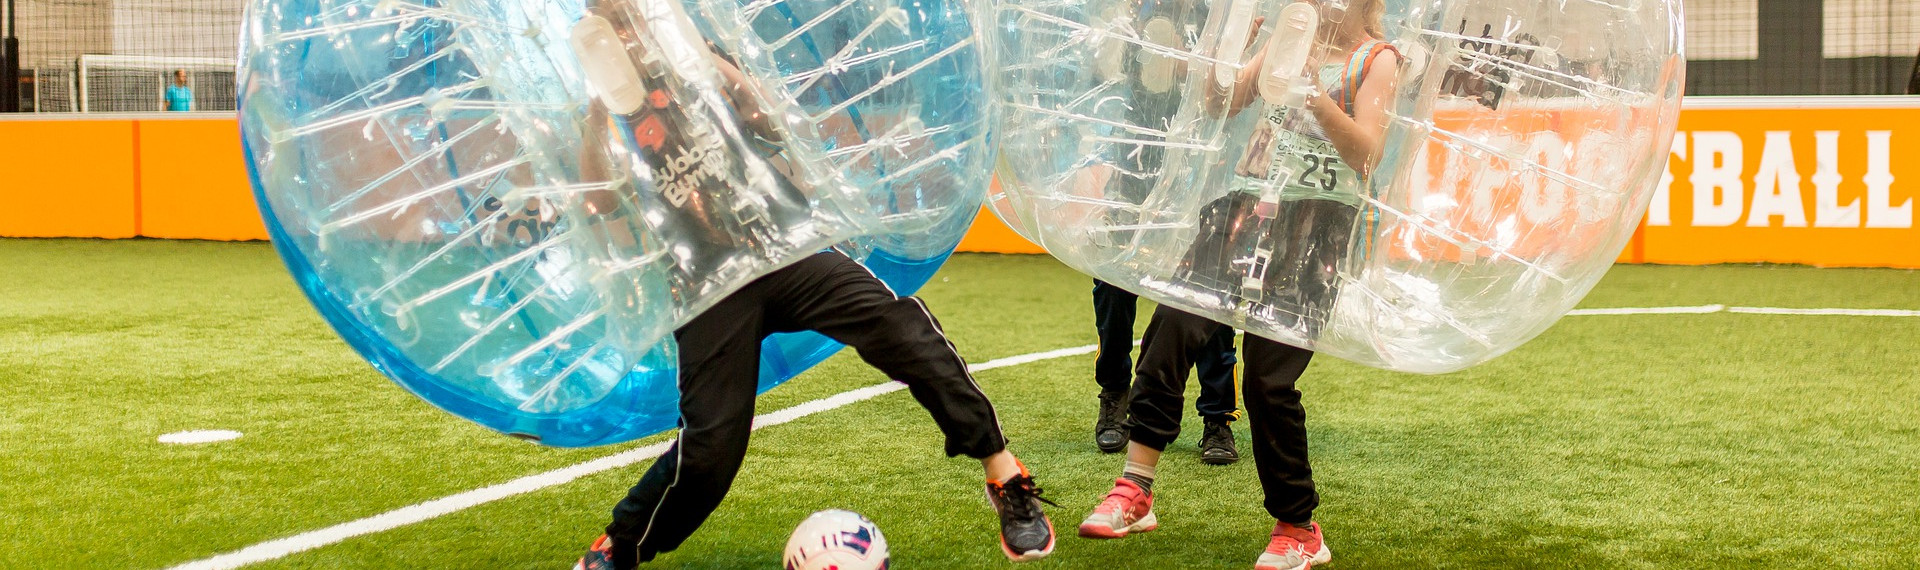 Bubble Football à Bruxelles | LE Site EVG  | Pissup Voyages